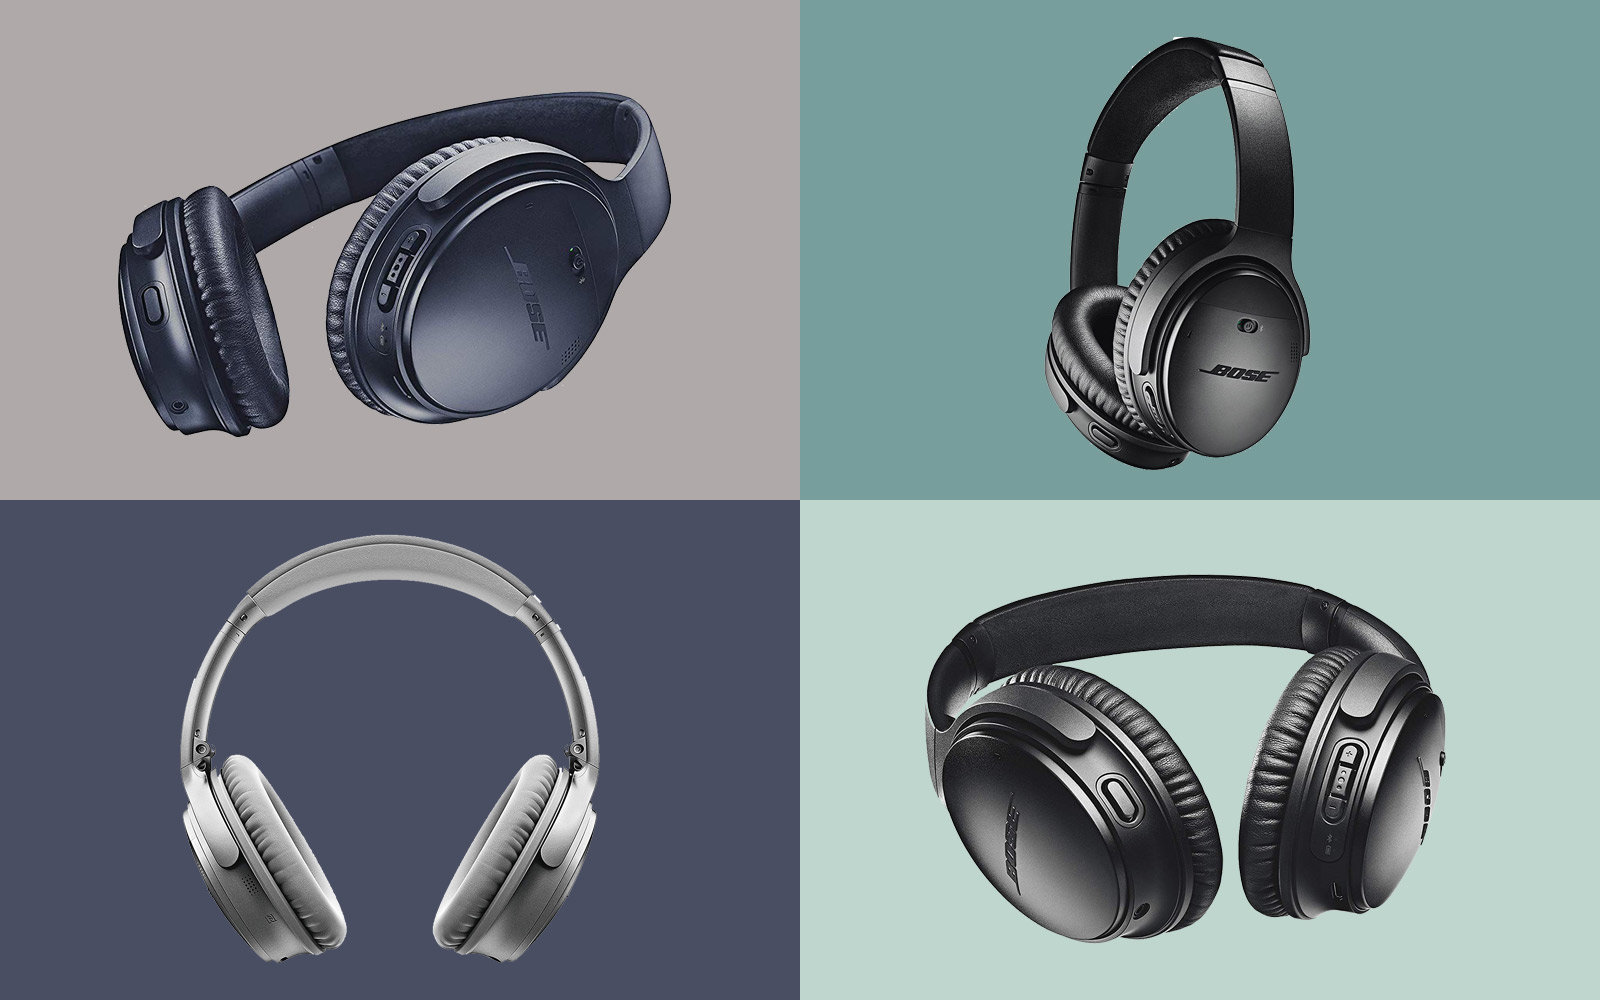 Bose's Best Noise-cancelling Headphones Are on Super Sale Right Now